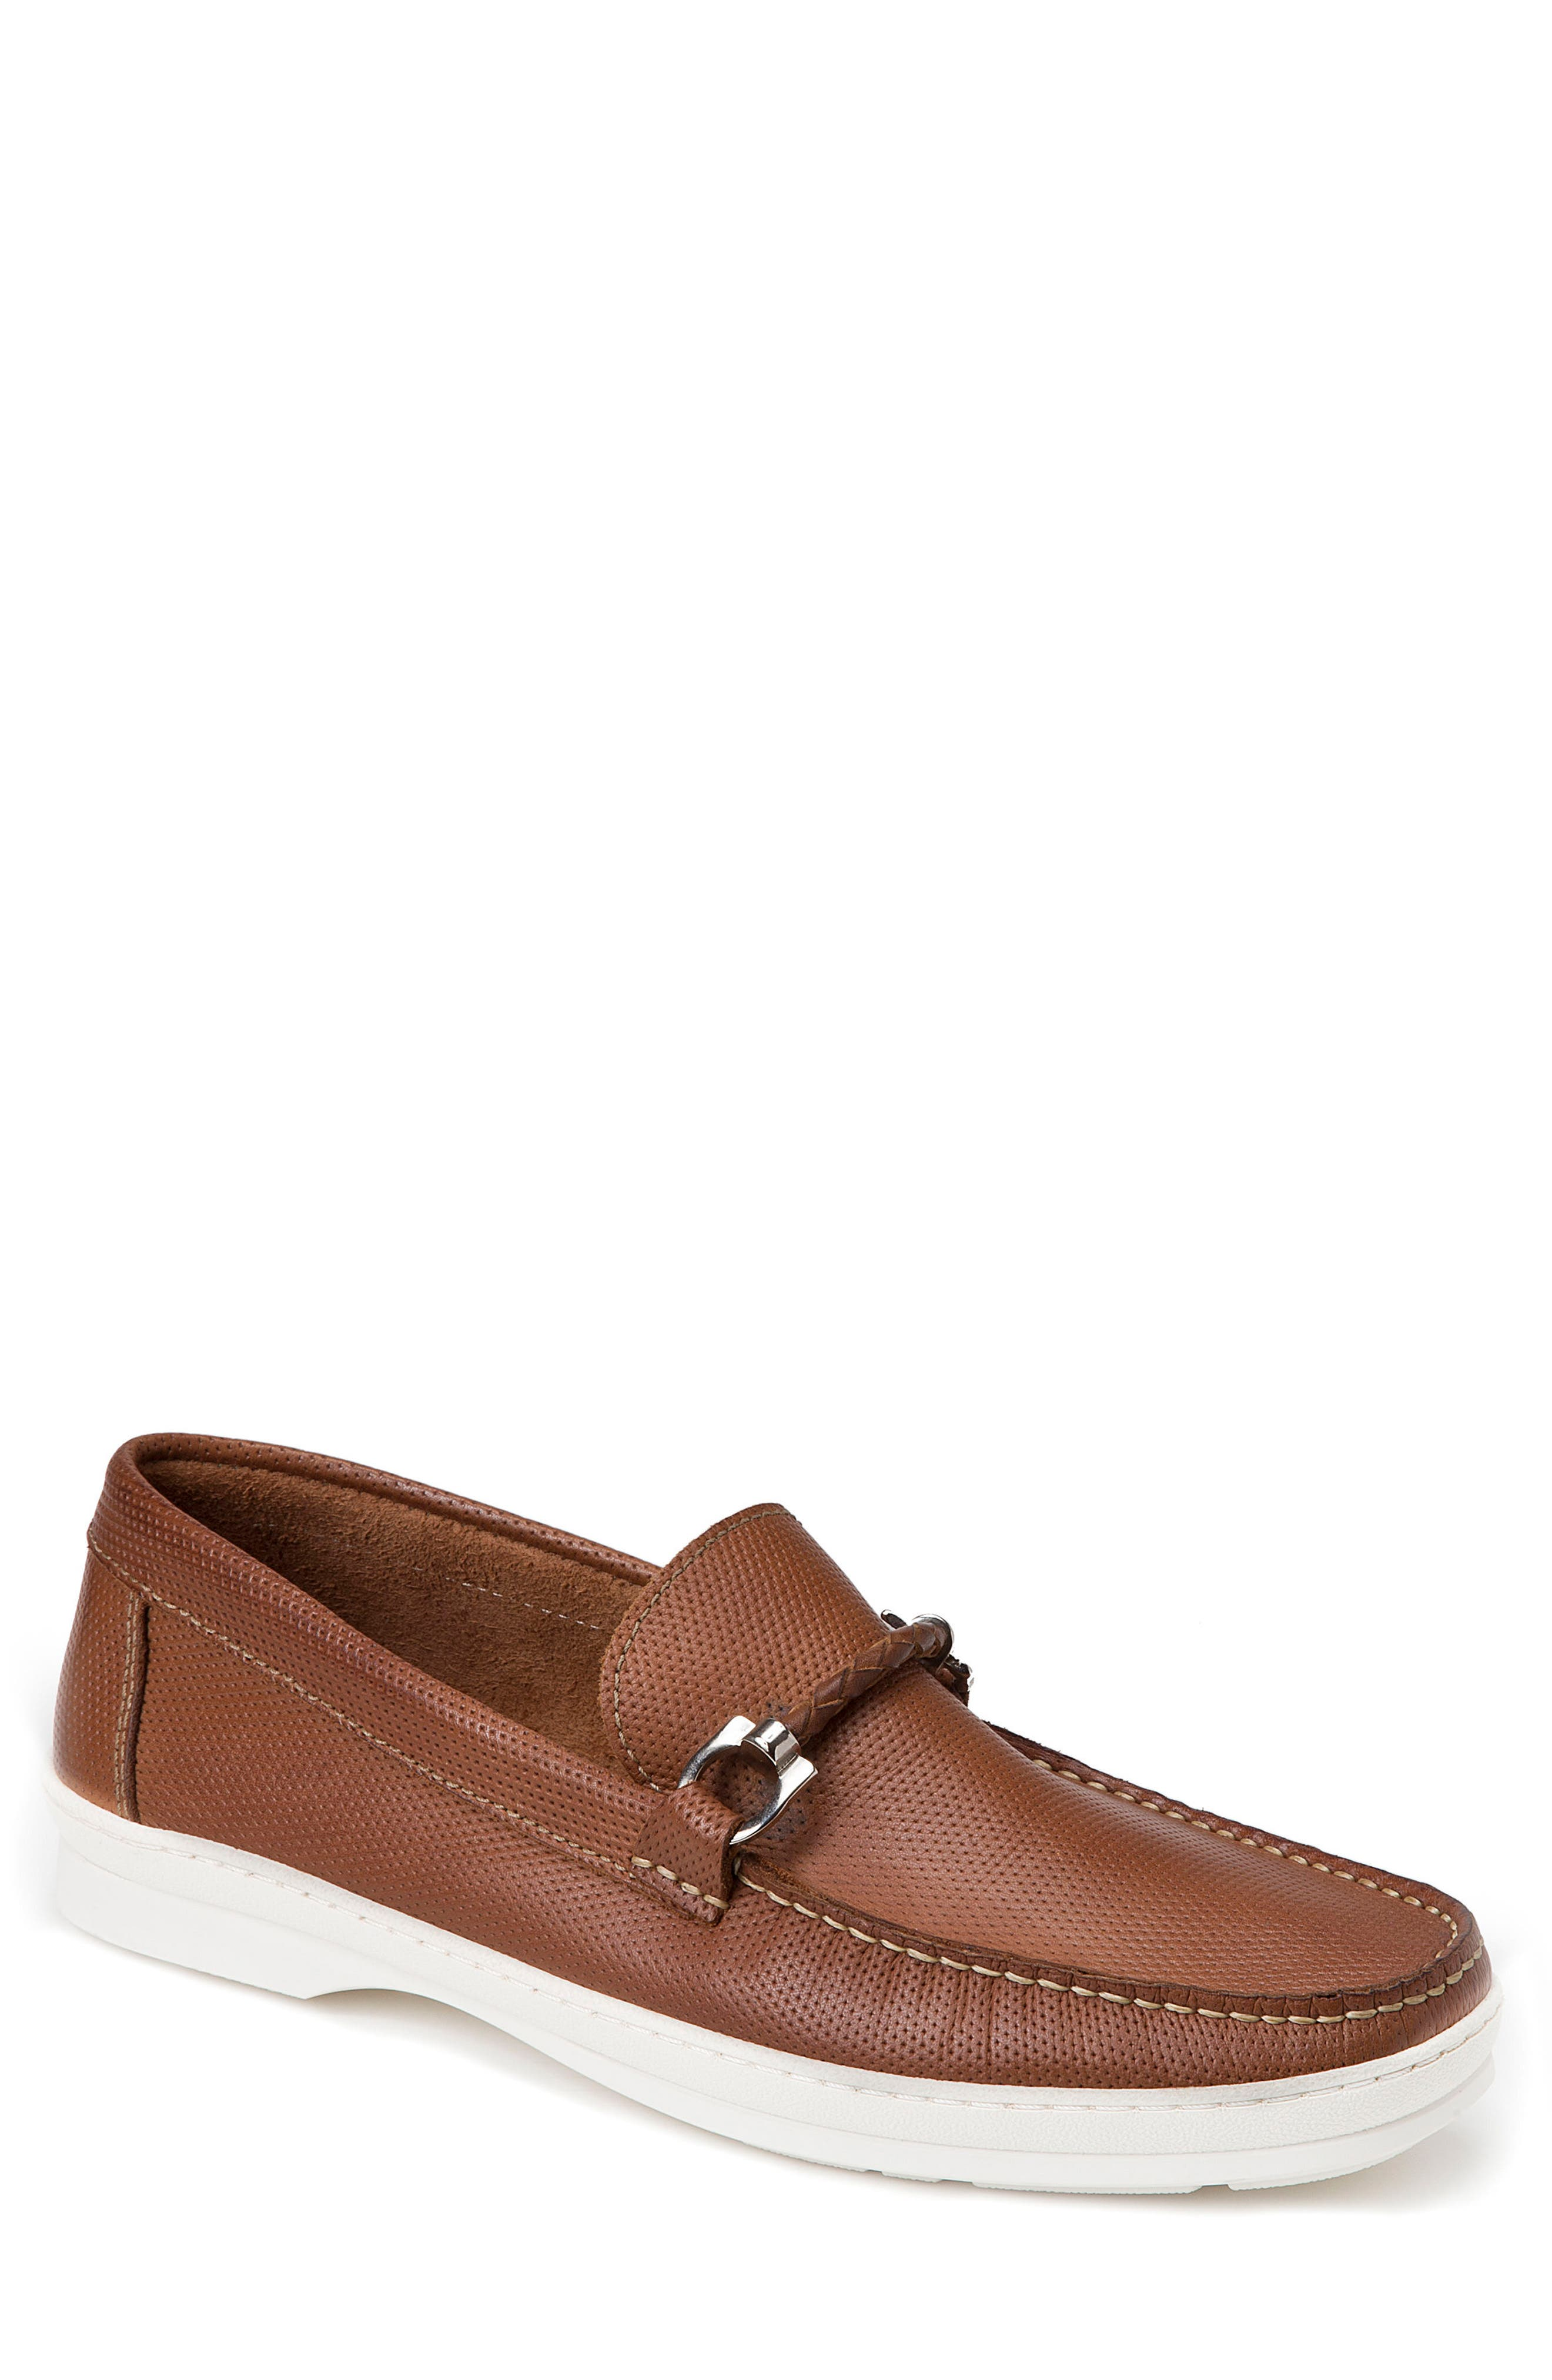 Alternate Image 1 Selected - Sandro Moscoloni Benito Perforated Moc Toe Loafer (Men)